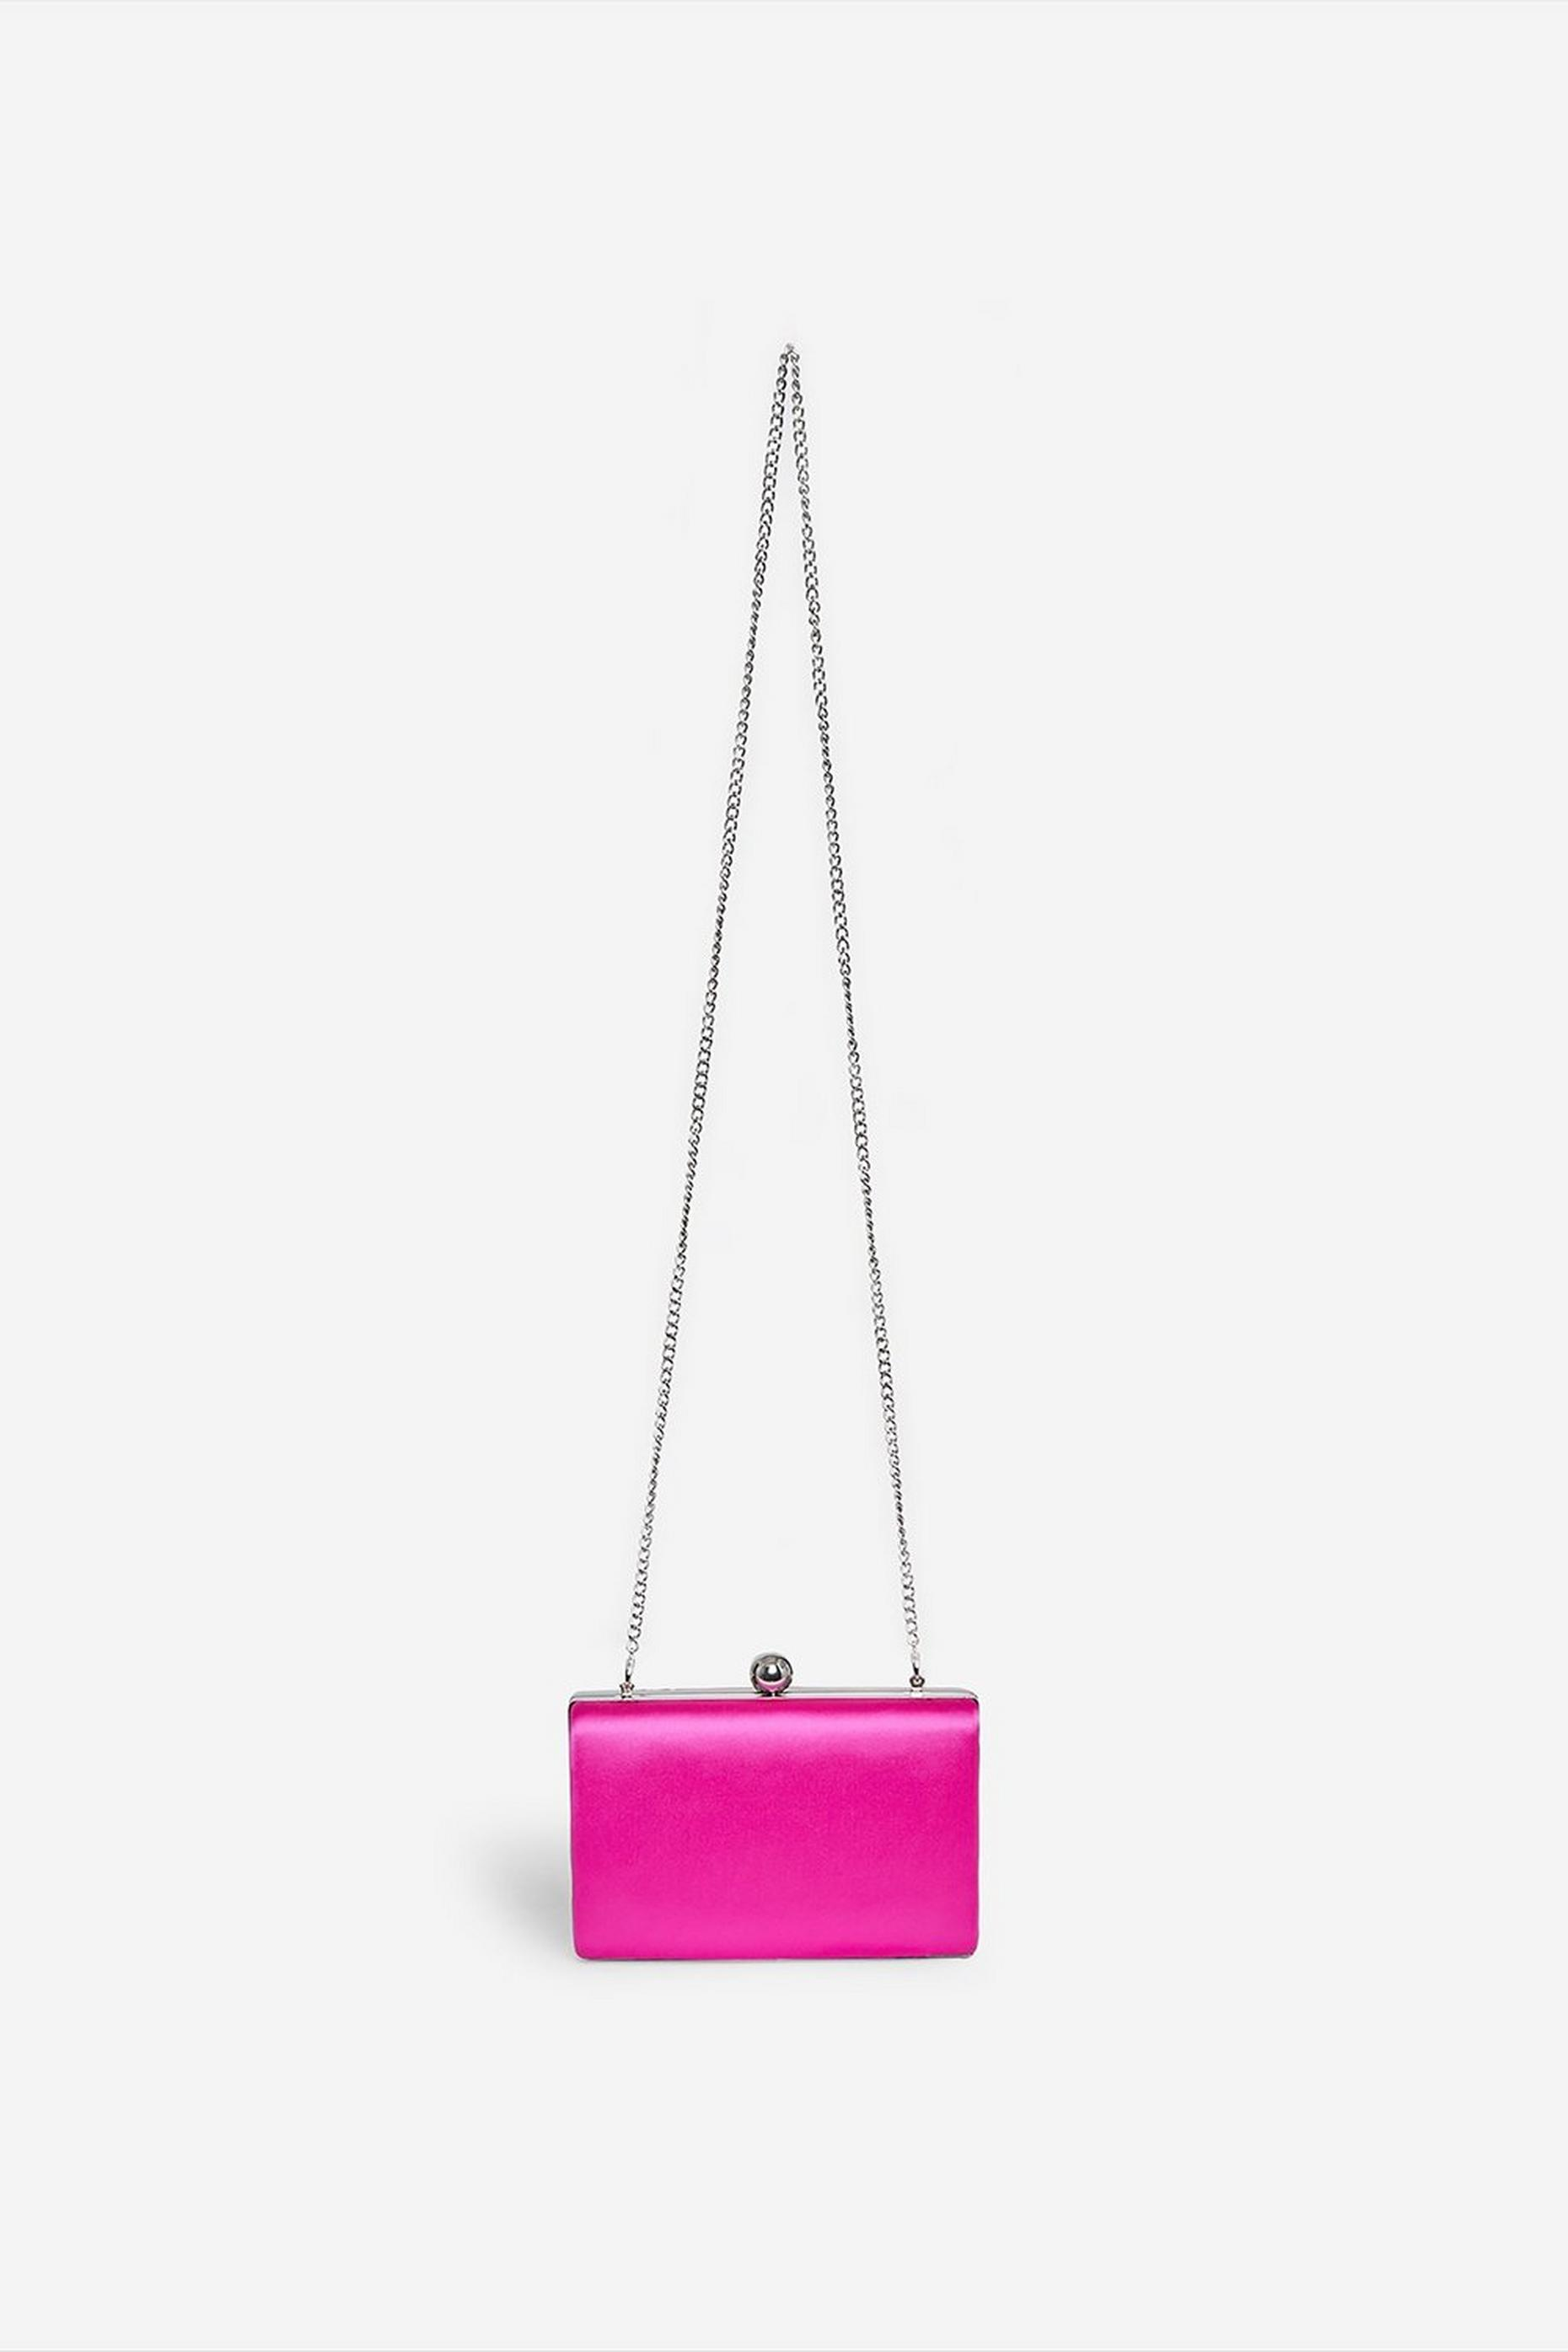 Pink Satin Box Clutch Bag